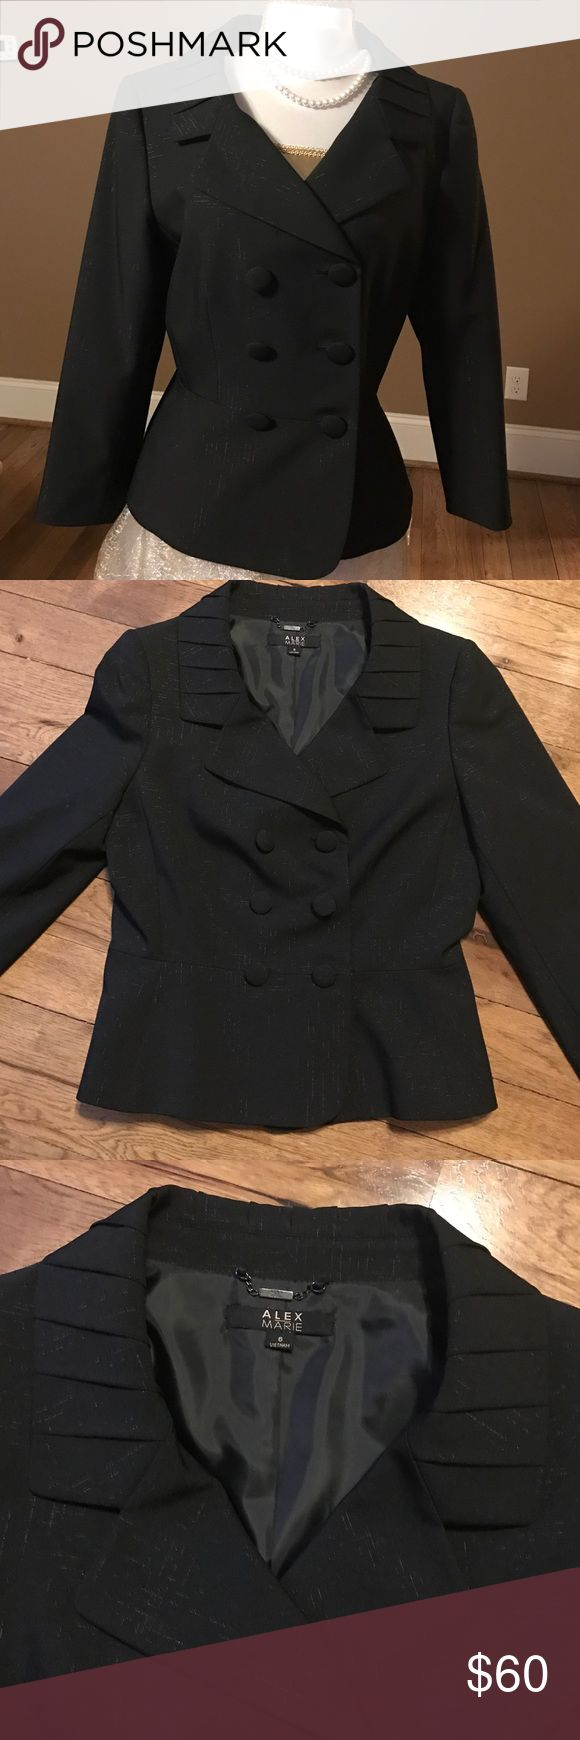 Fancy Suit Jacket Black and shiny very nice Jacket . Like new conditions worn once at a wedding. From Pet and smoke free home Alex Marie Jackets & Coats